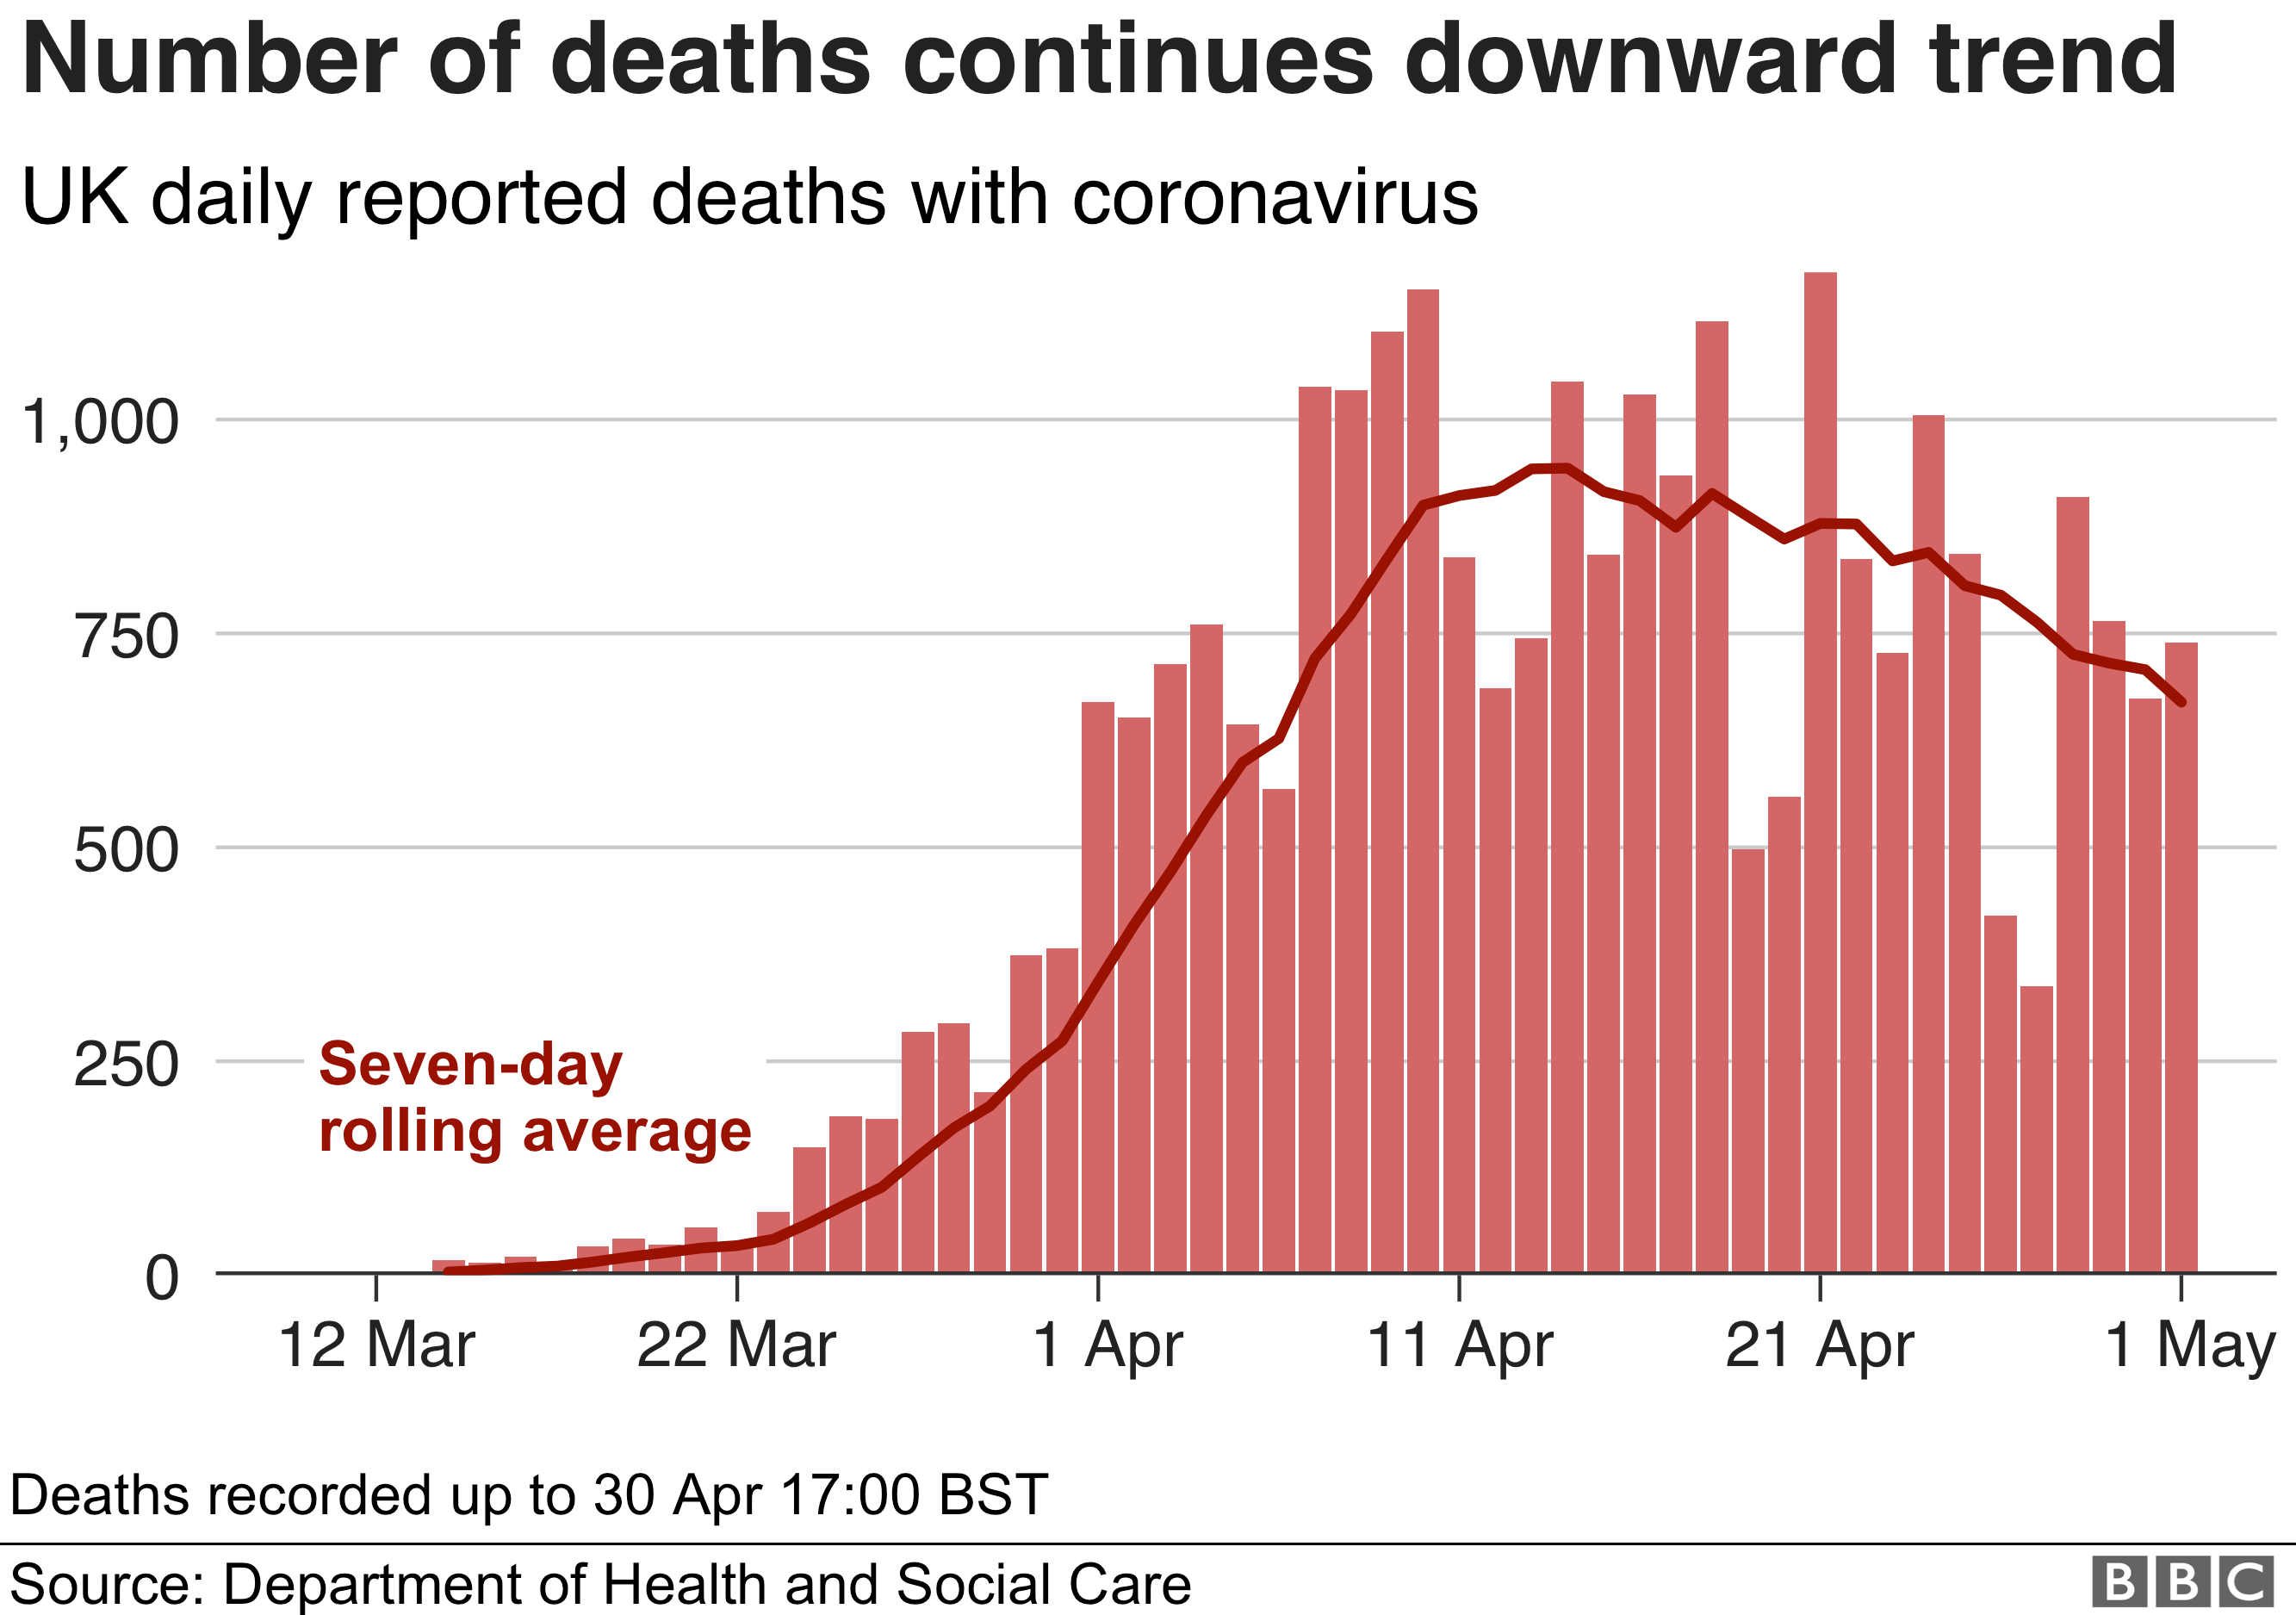 Chart showing that the number of deaths is continuing a downward trend, 1 May